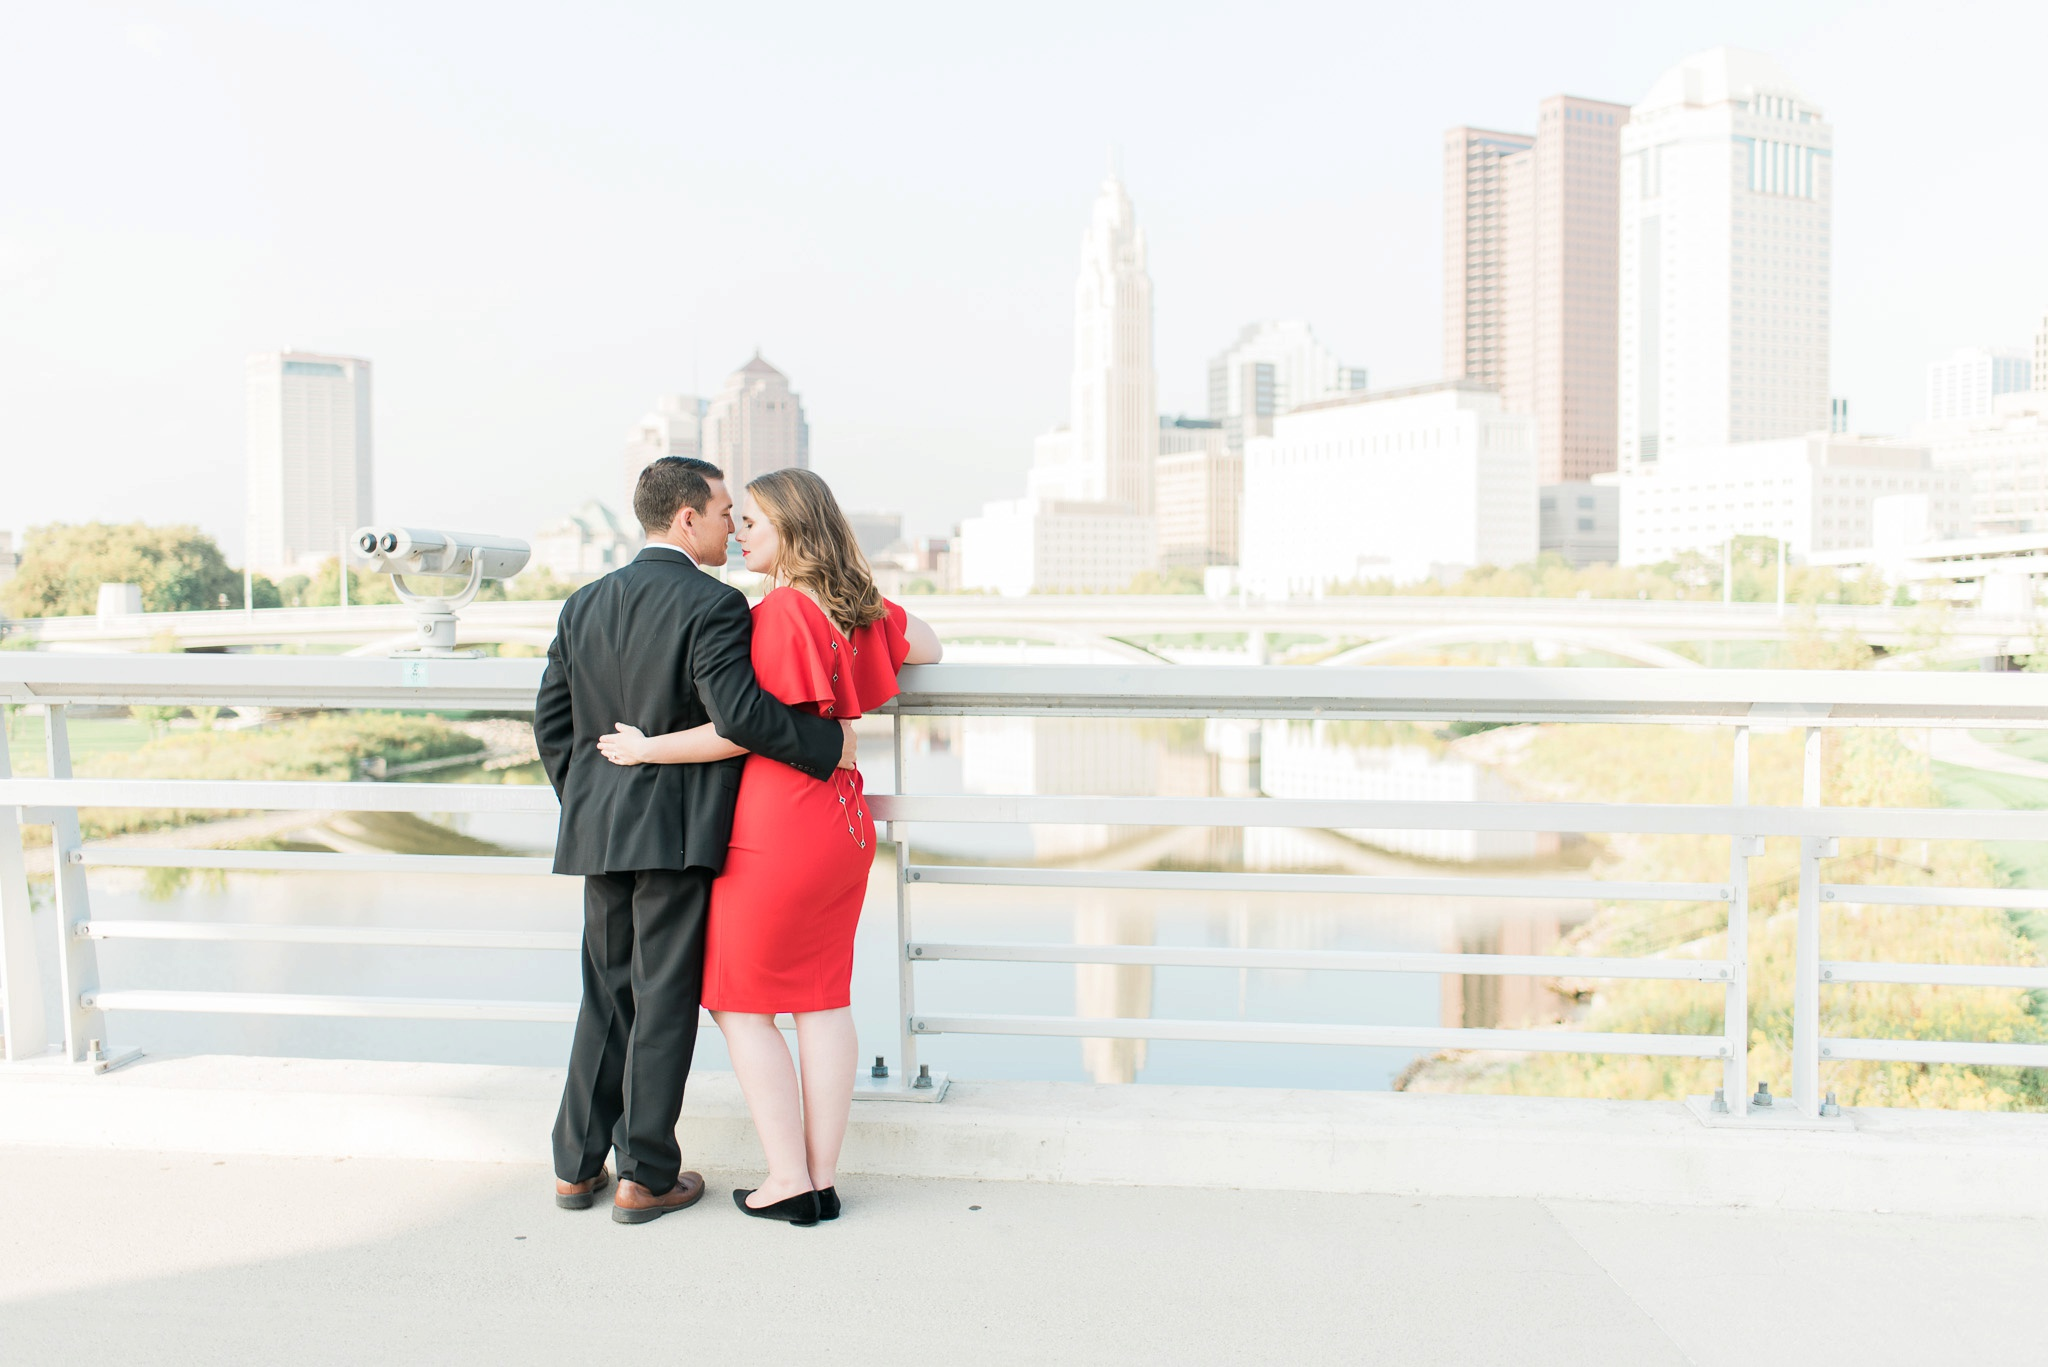 downtown-columbus-german-village-engagement-session-53.jpg